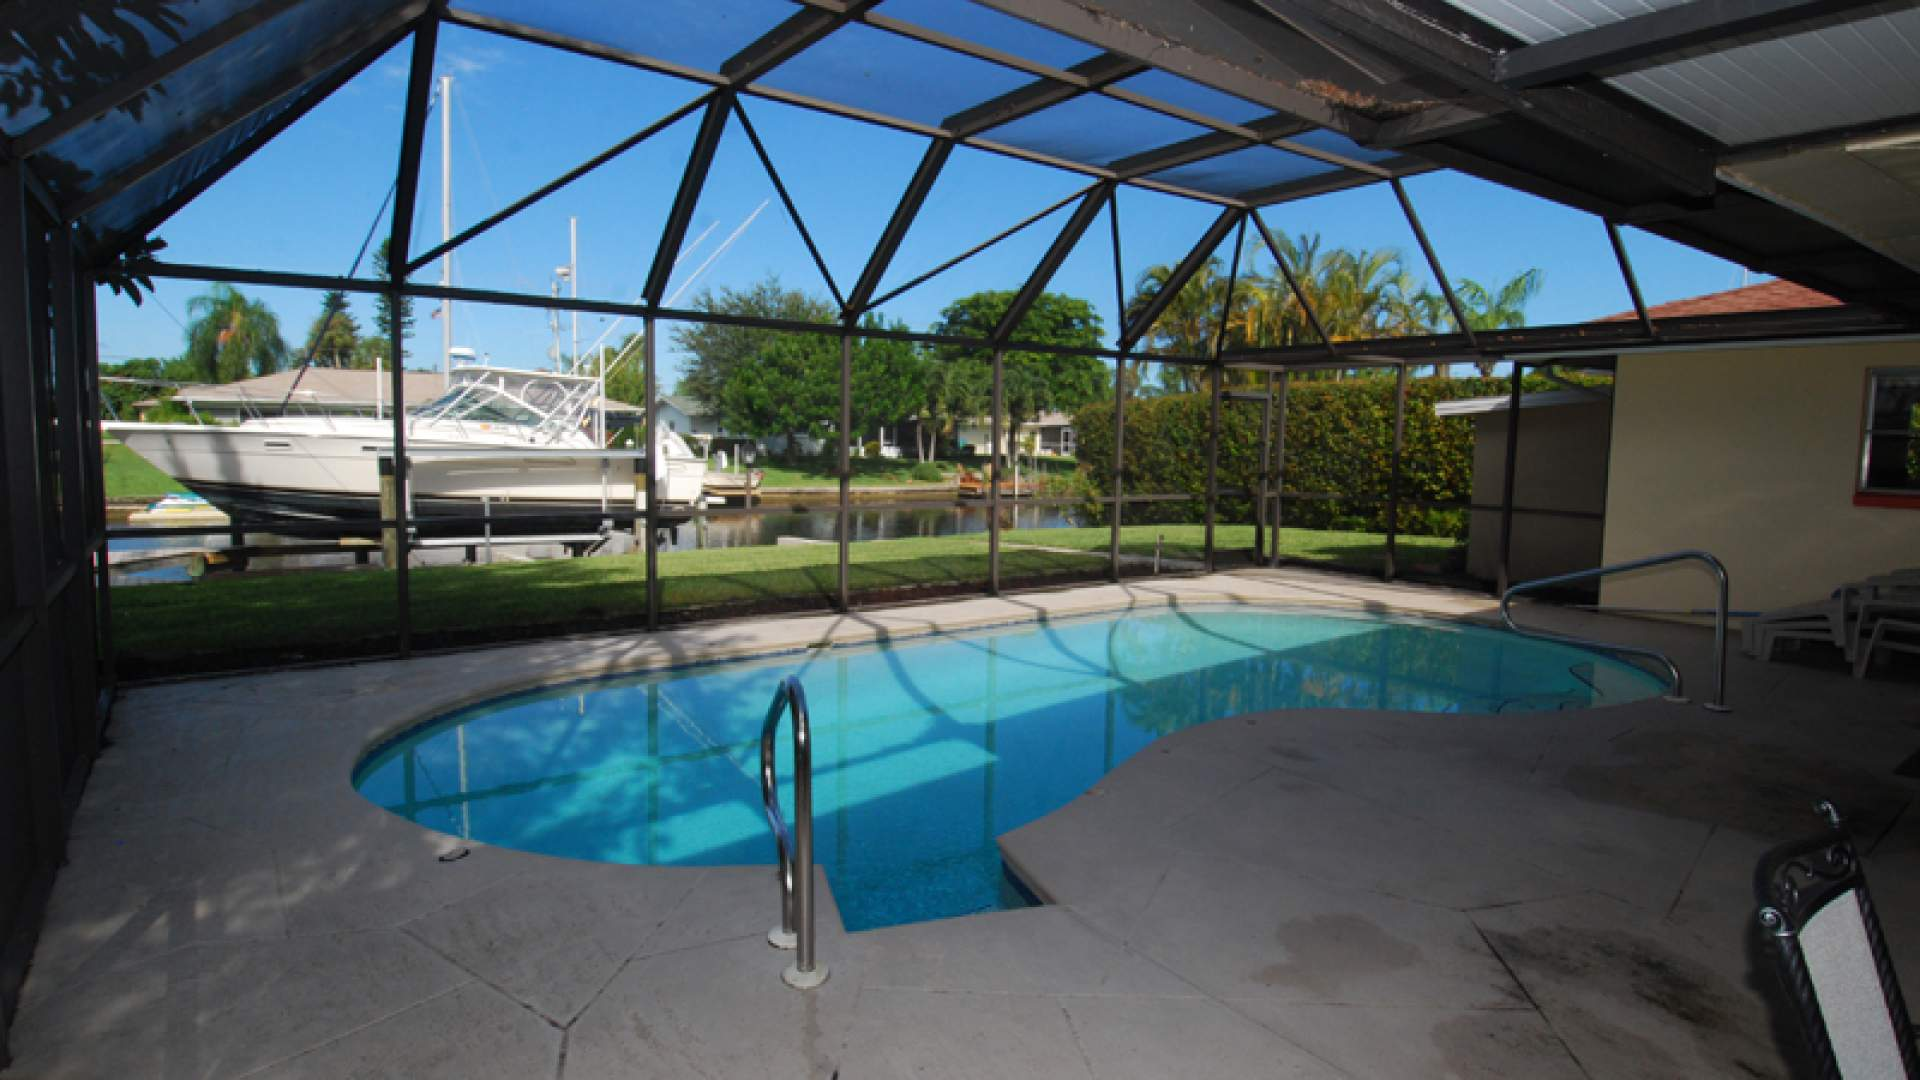 The pool can be electrically heated and enjoyed throughout the year